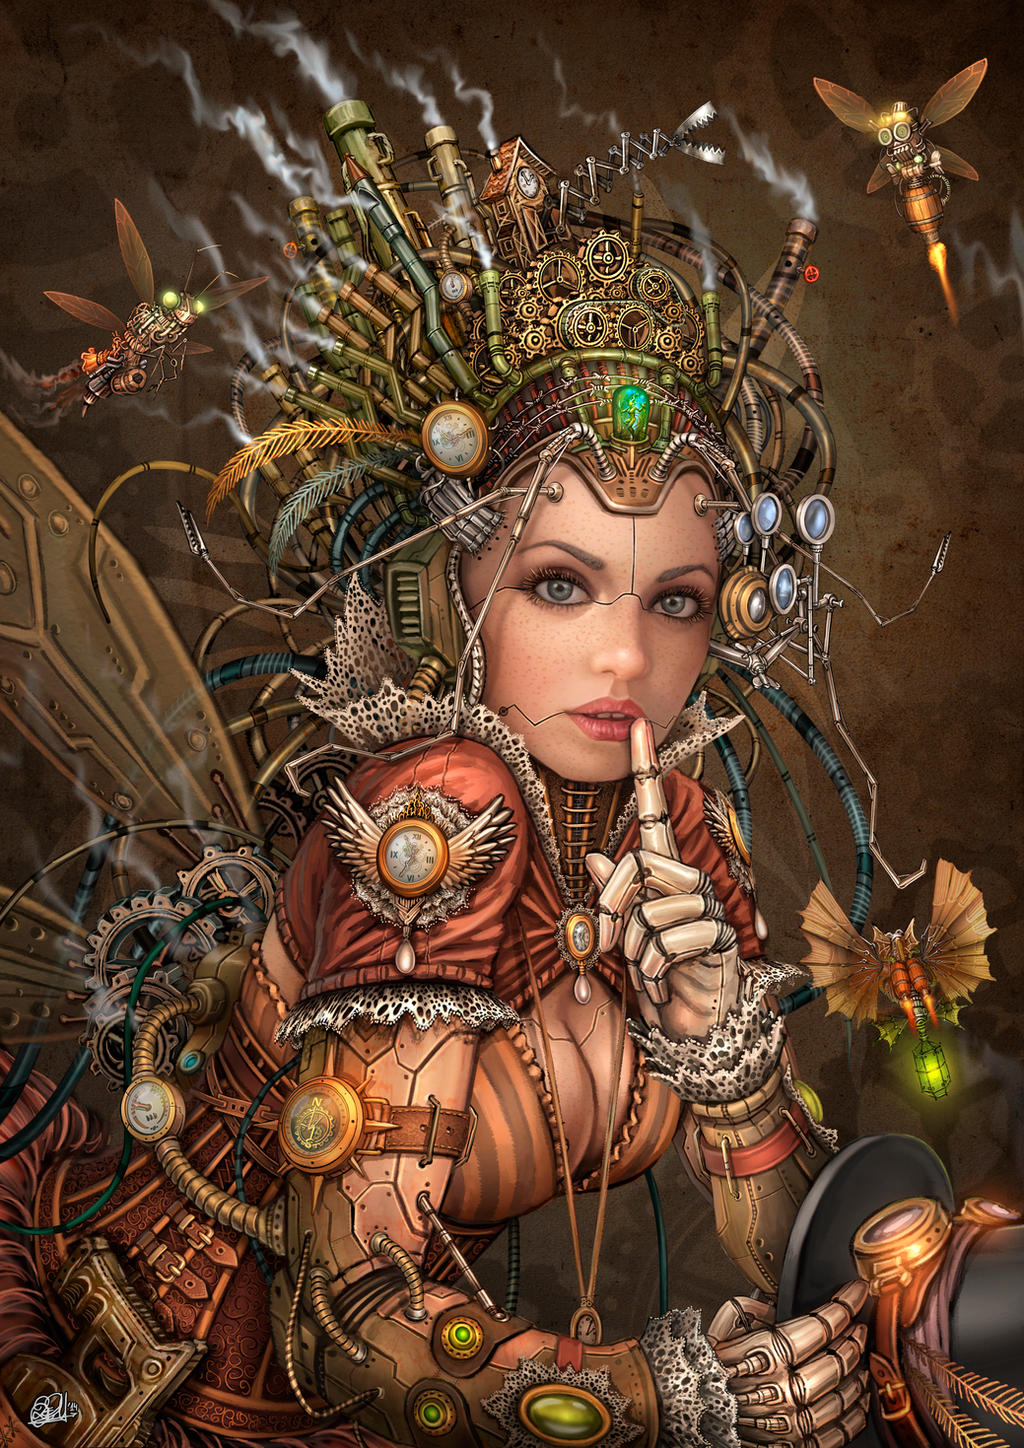 Silence Please Steampunk Fairy By DarkAkelarre On DeviantArt